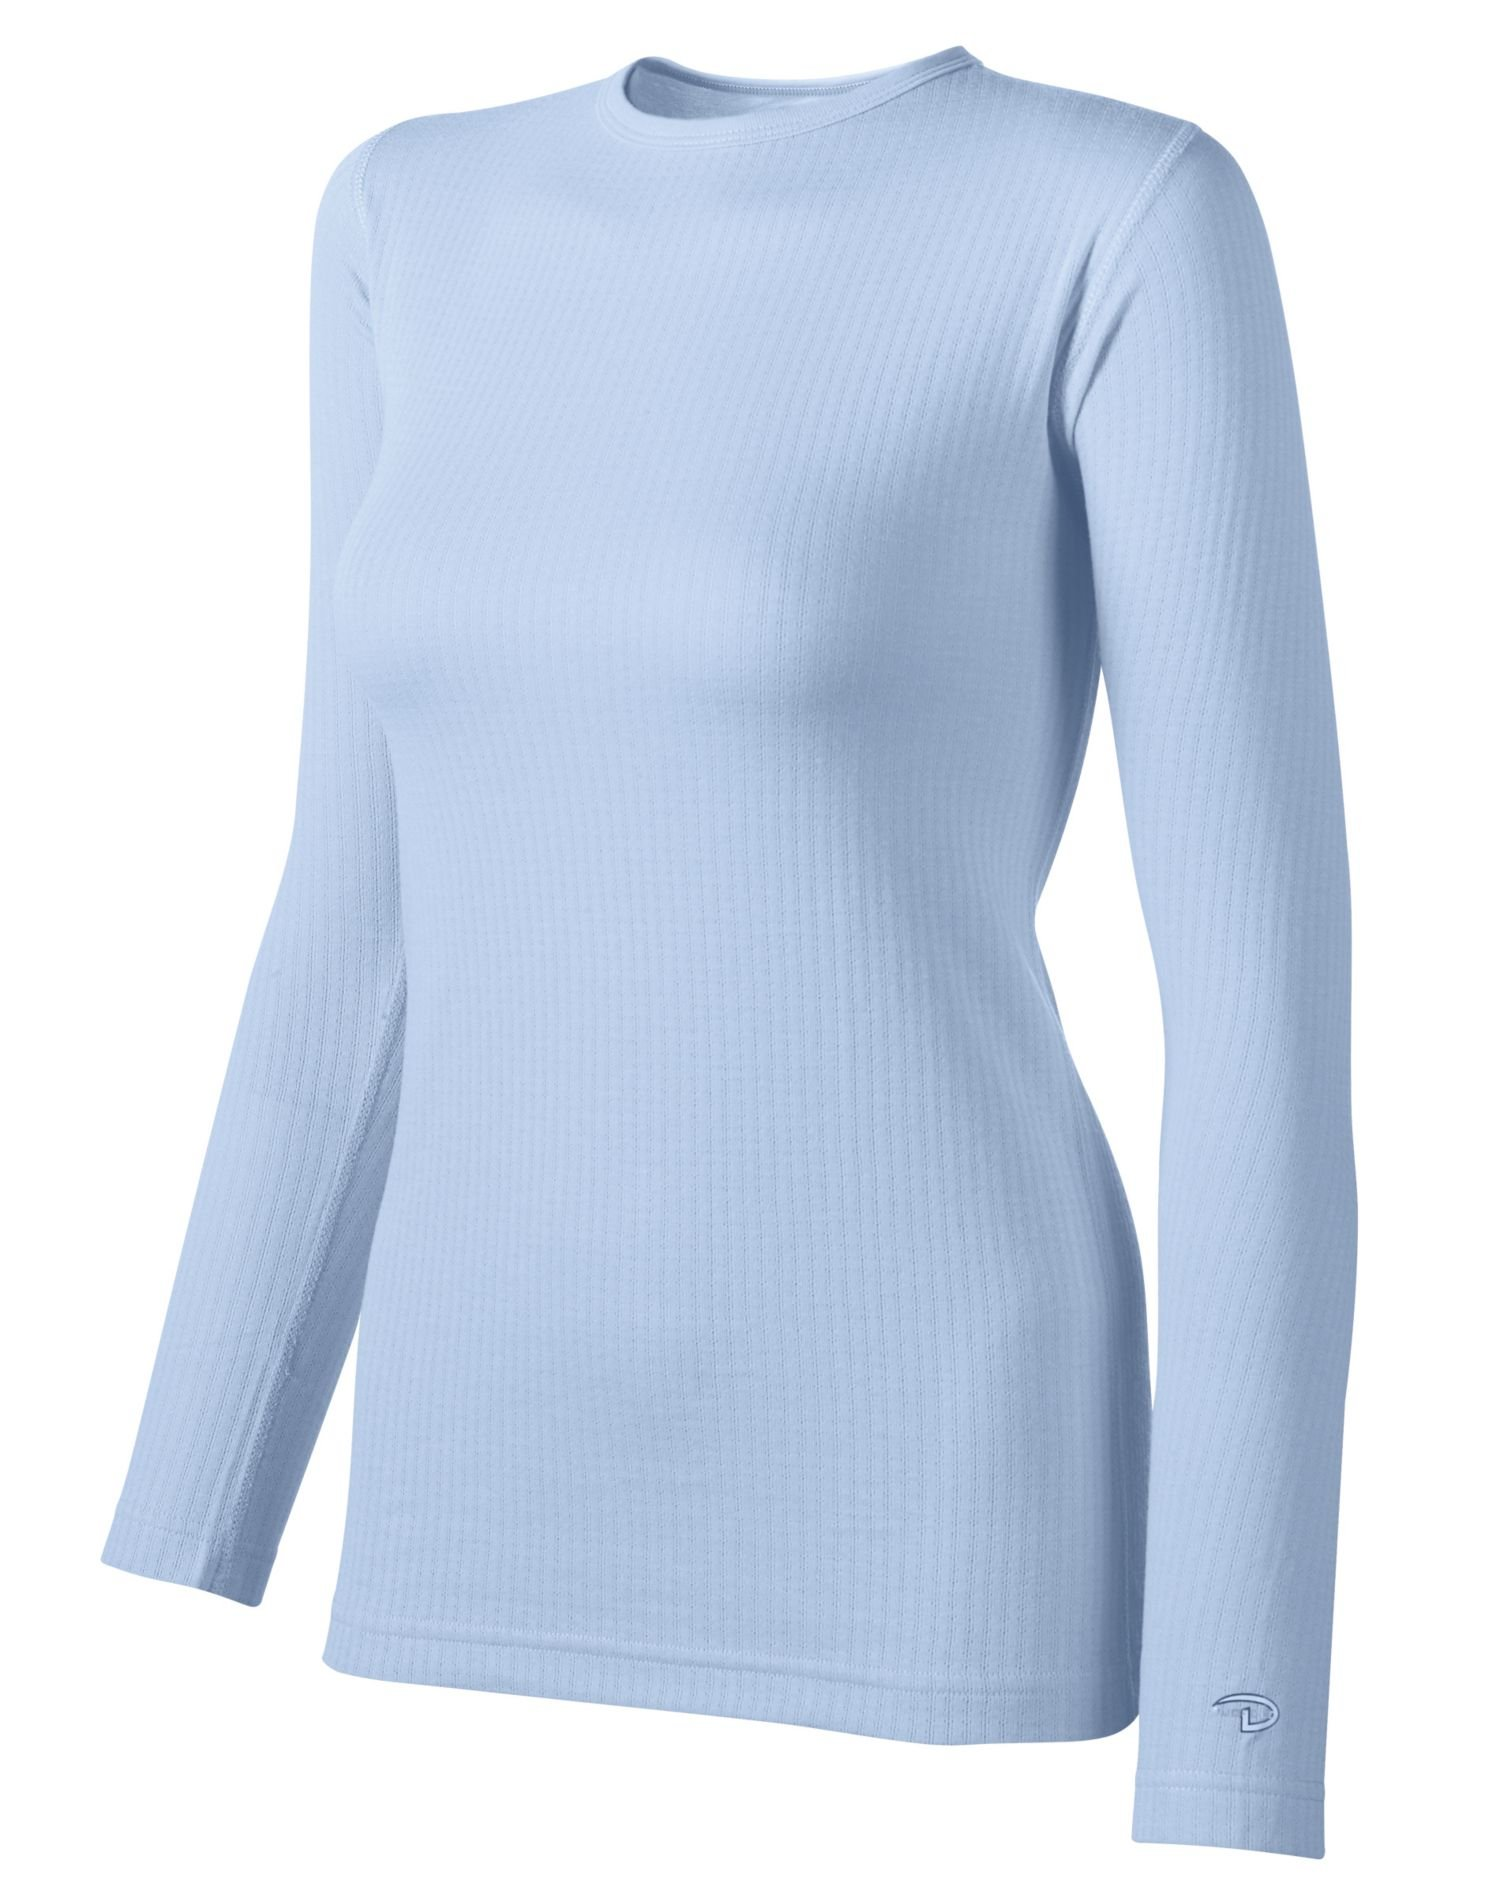 Duofold Women's Midweight Long Sleeve 2 Layer Crew With Moisture Wicking,Frost,Medium